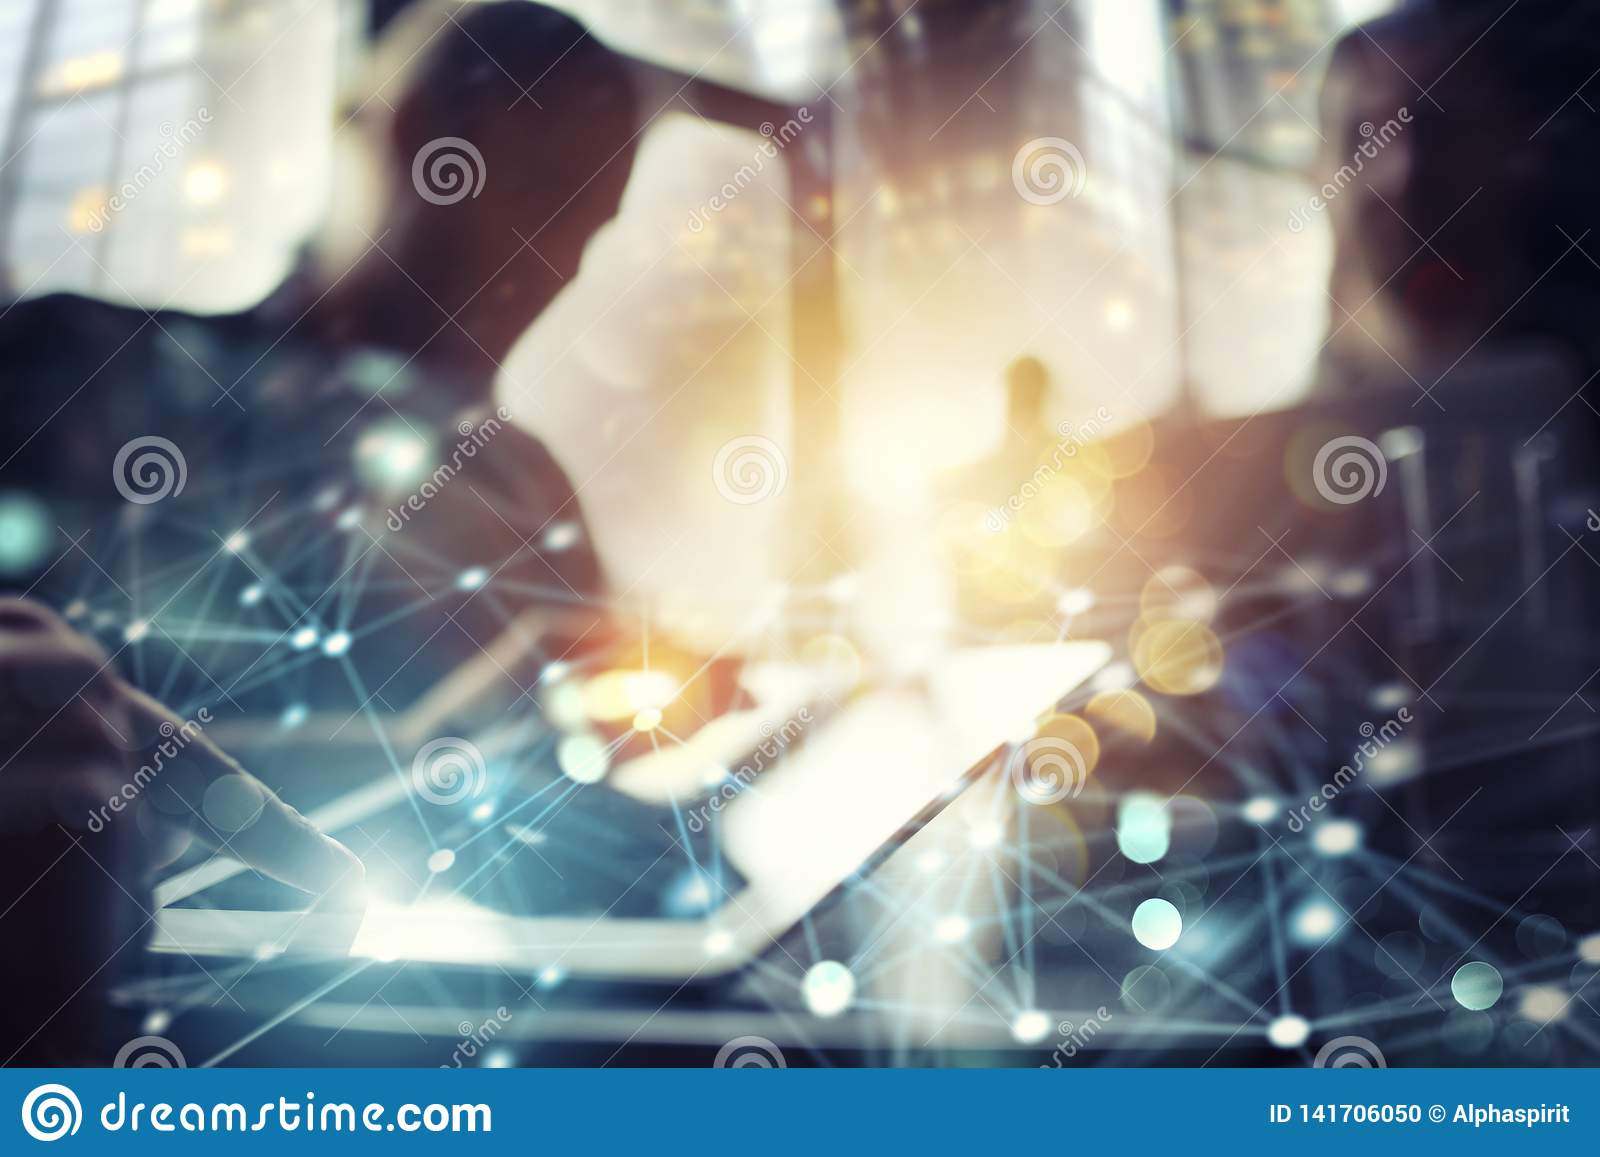 Team of people work together in office with a tablet. Concept of teamwork and partnership. Double exposure